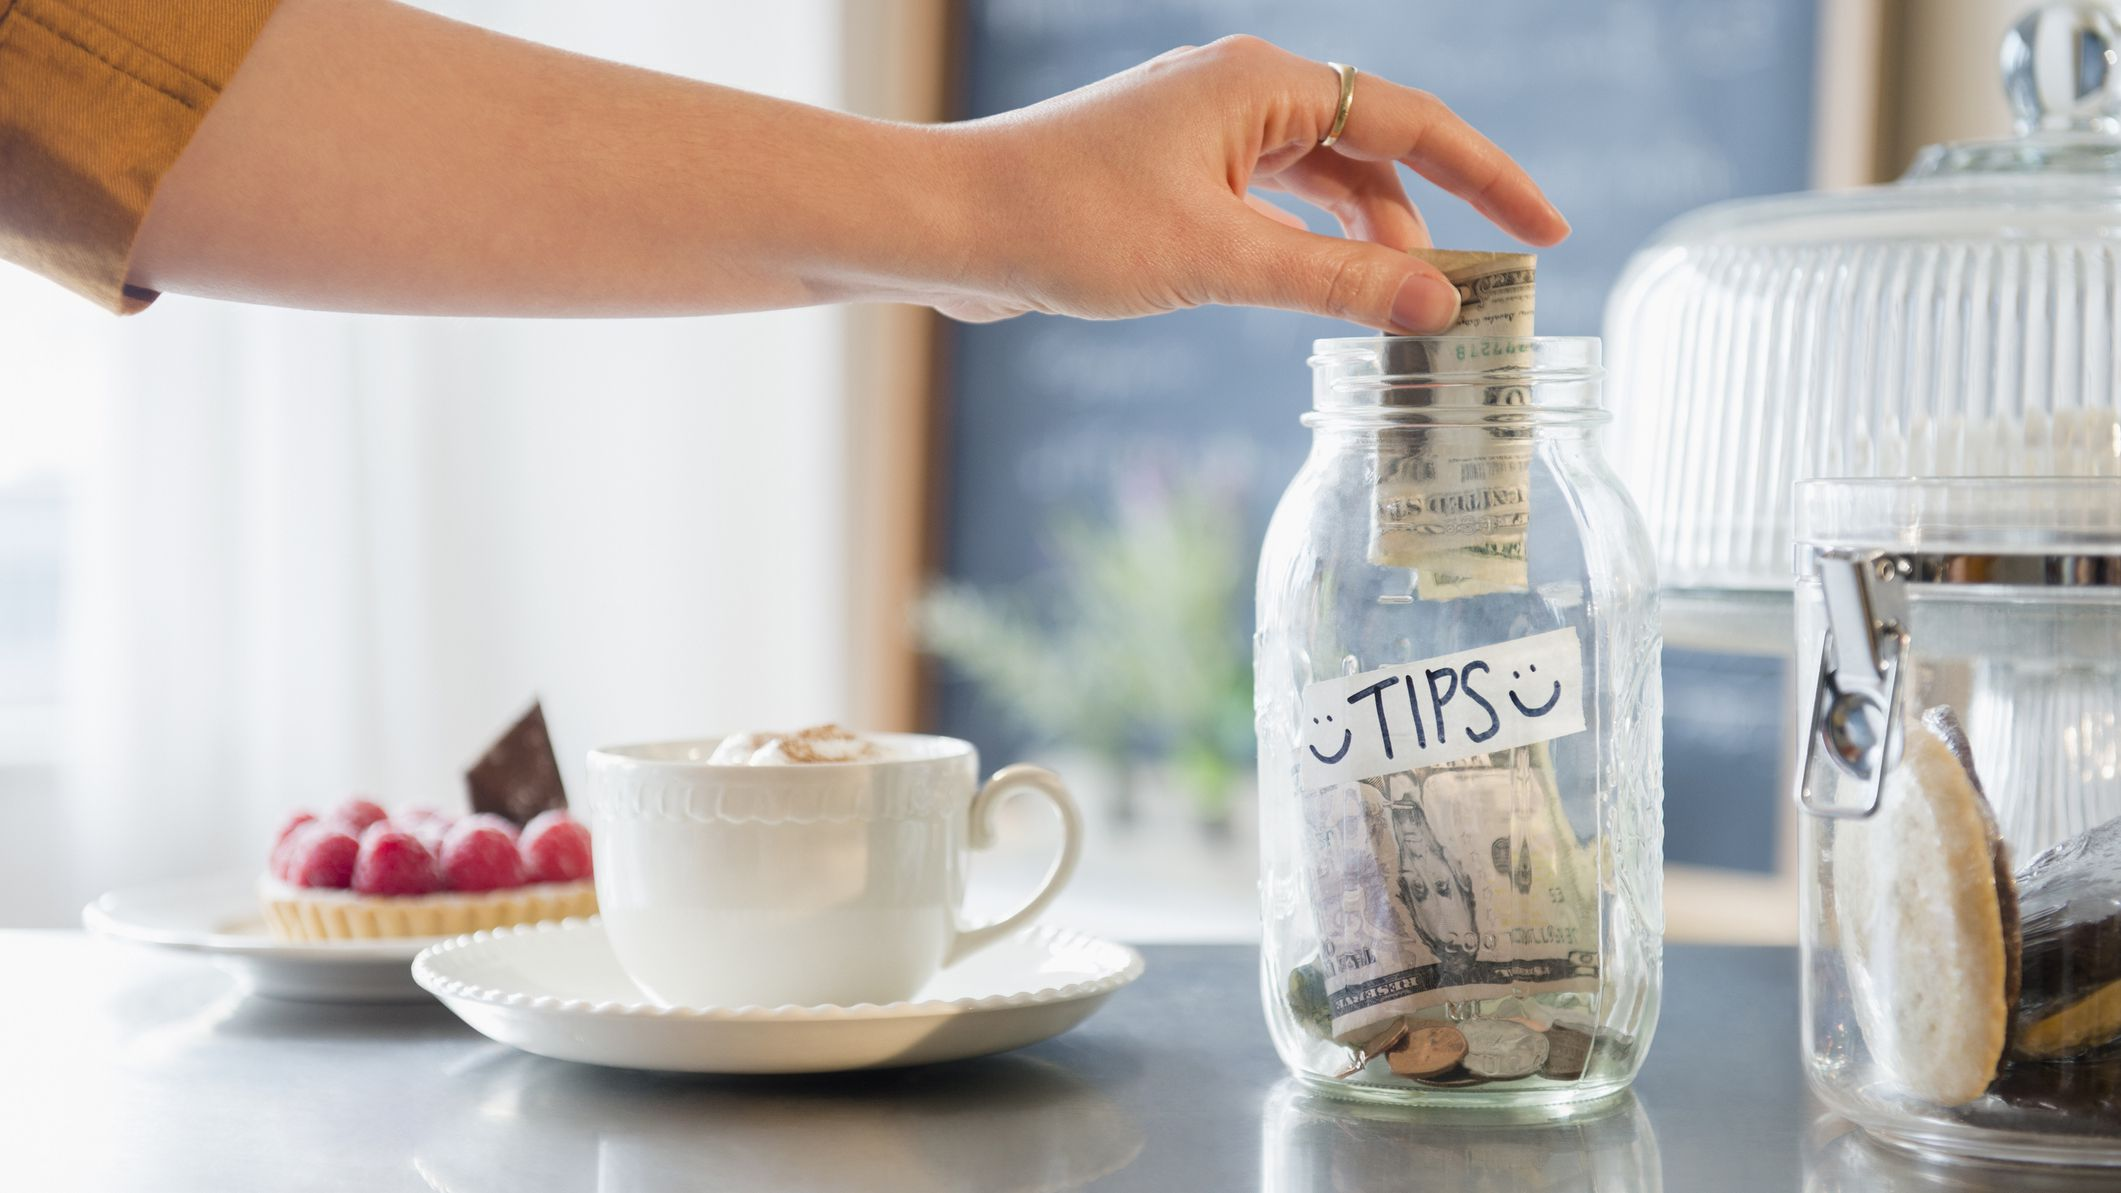 Business Etiquette Tips Do I Have To Put Money Into A Tip Jar